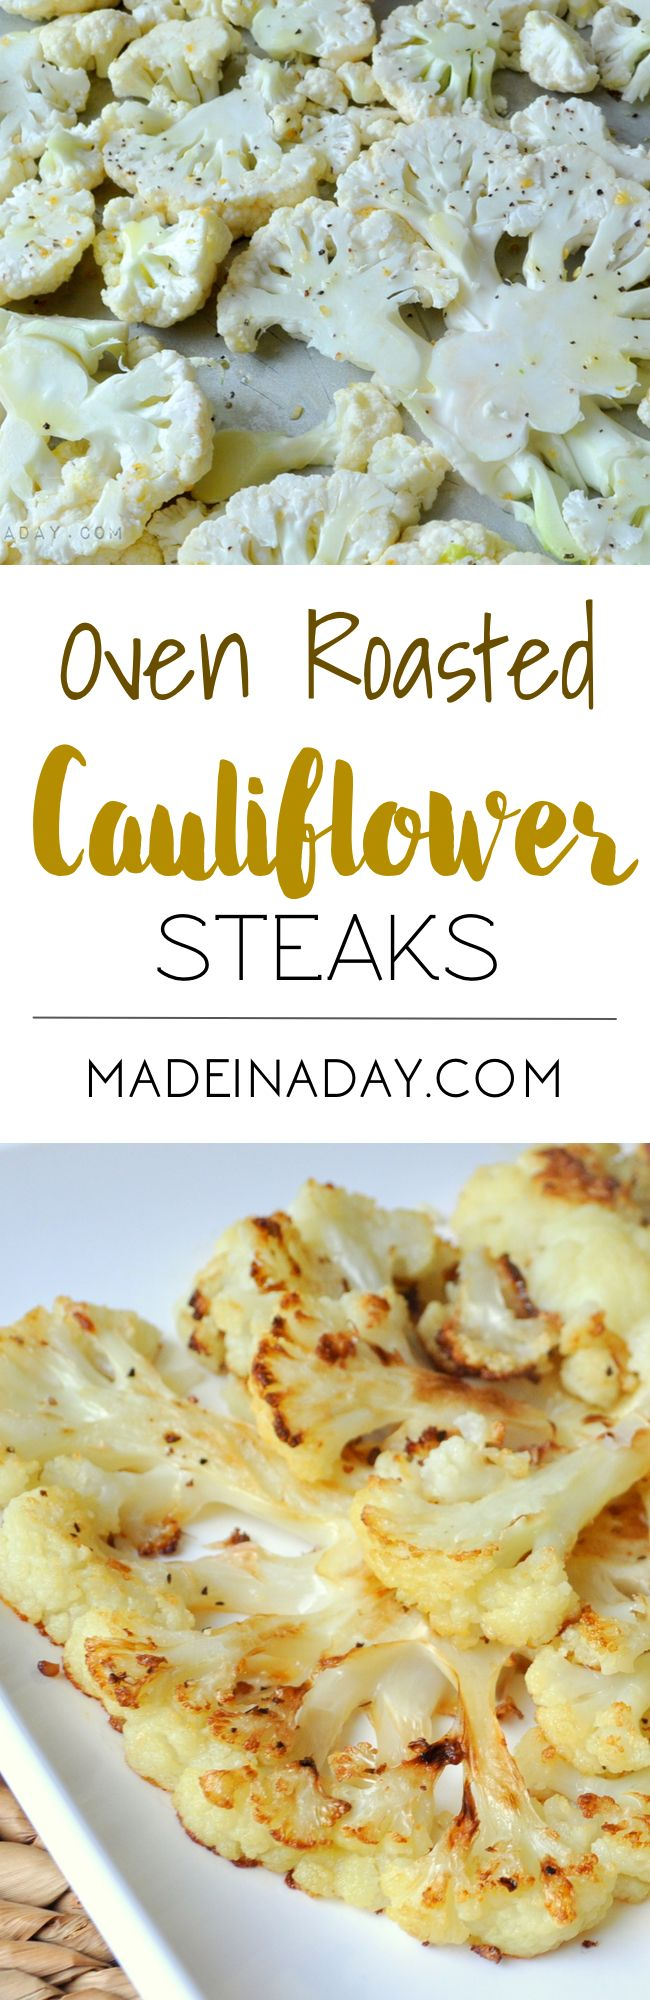 Oven Roasted Cauliflower Steaks, learn to cut cauliflower into steaks and season them for a low-carb meal! Parmesan cheese, garlic olive oil blend.